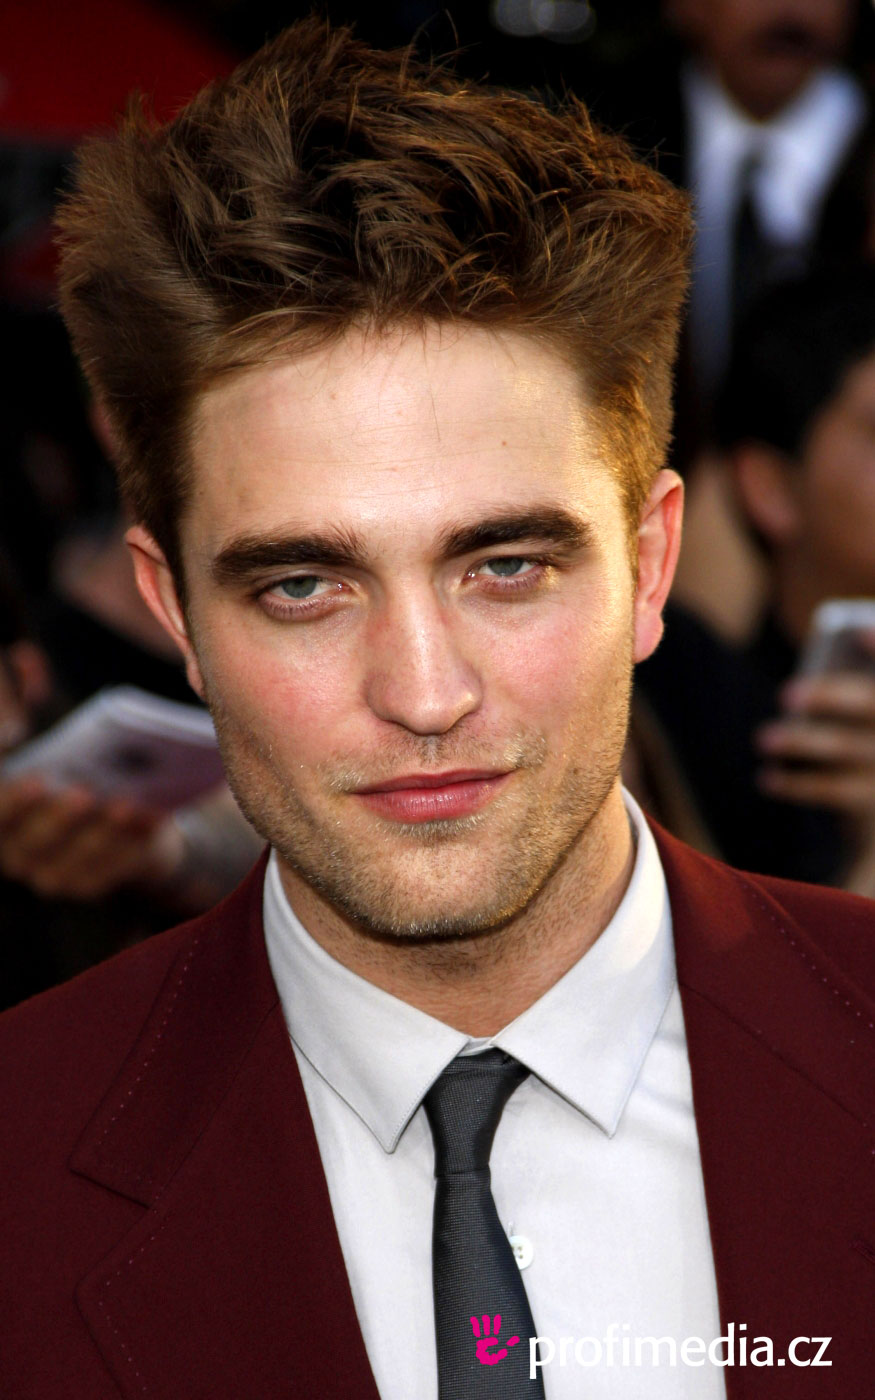 Frisyr - Robert Pattinson - Robert Pattinson - pattinson1jl1310